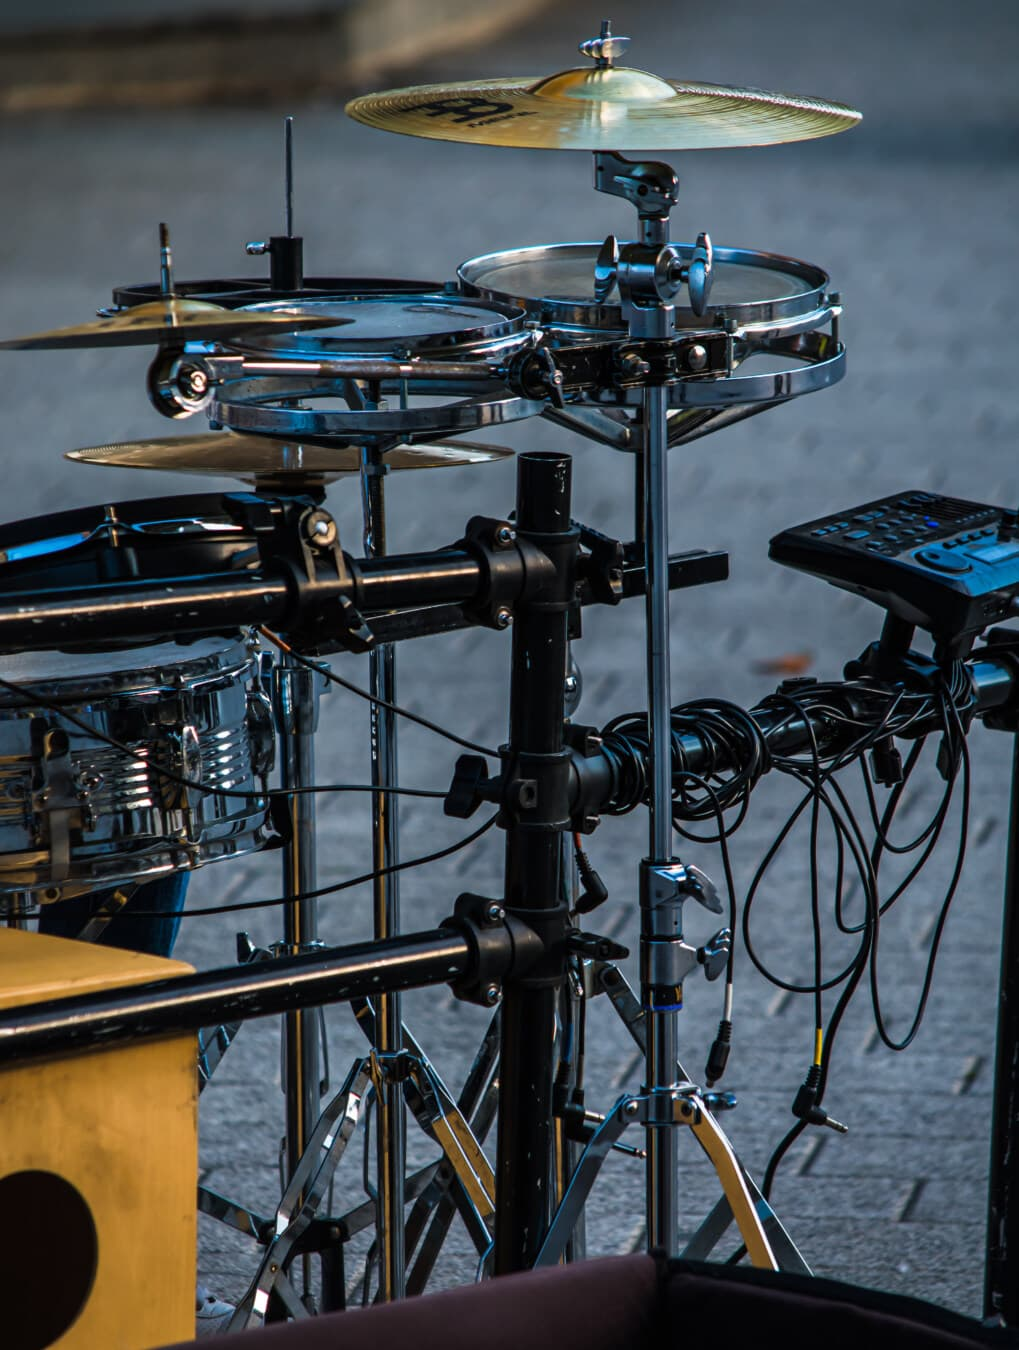 drum, music, instrument, electronics, electric, amplifier, equipment, electricity, technology, industry